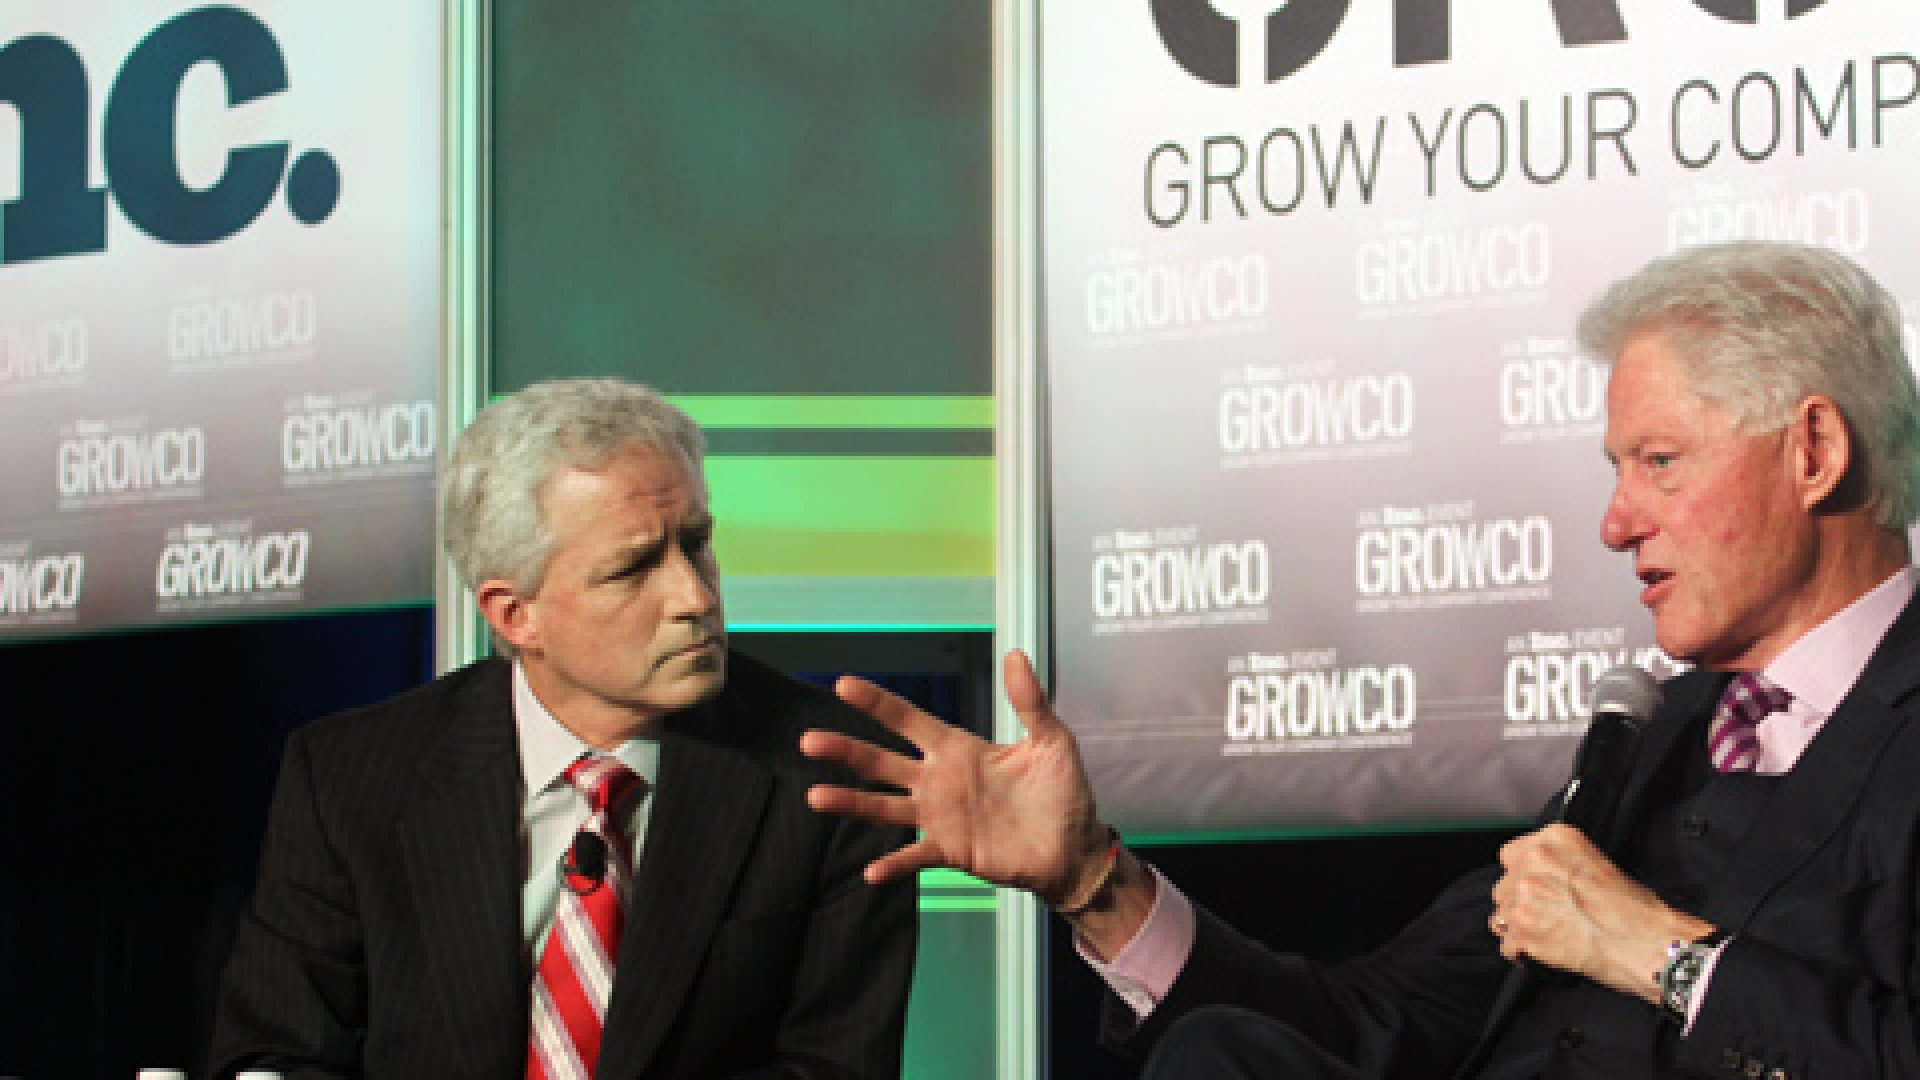 Bill Clinton with Inc.com editor Eric Schurenberg at Inc.'s Grow Your Company Conference, March 2012